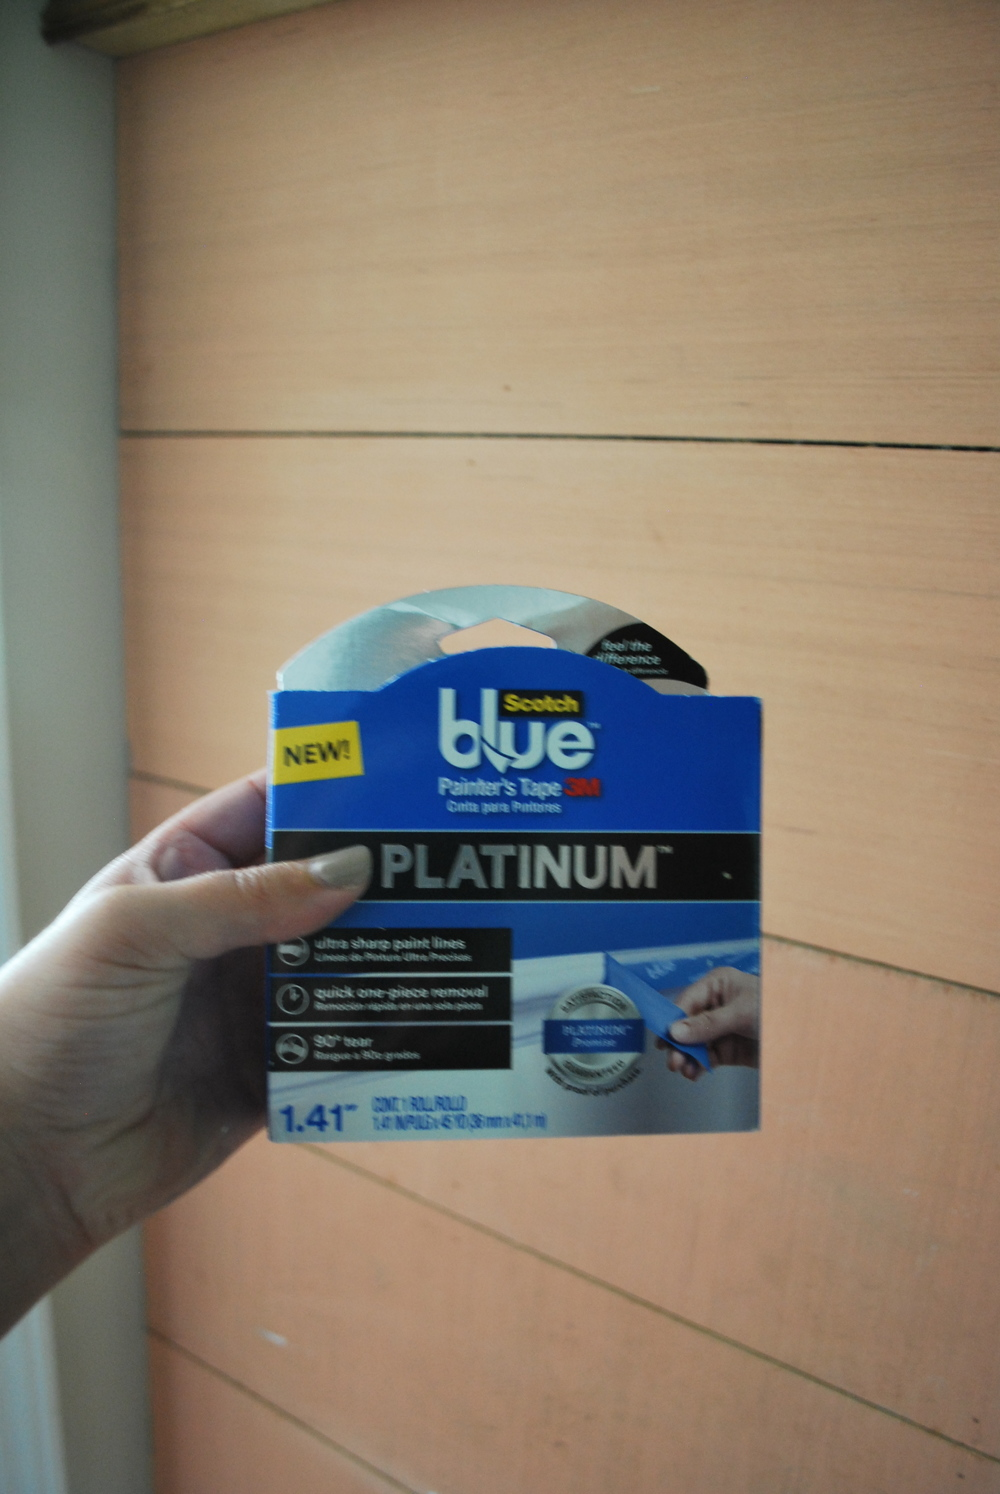 3M Scotch Blue Platinium Painters Tape